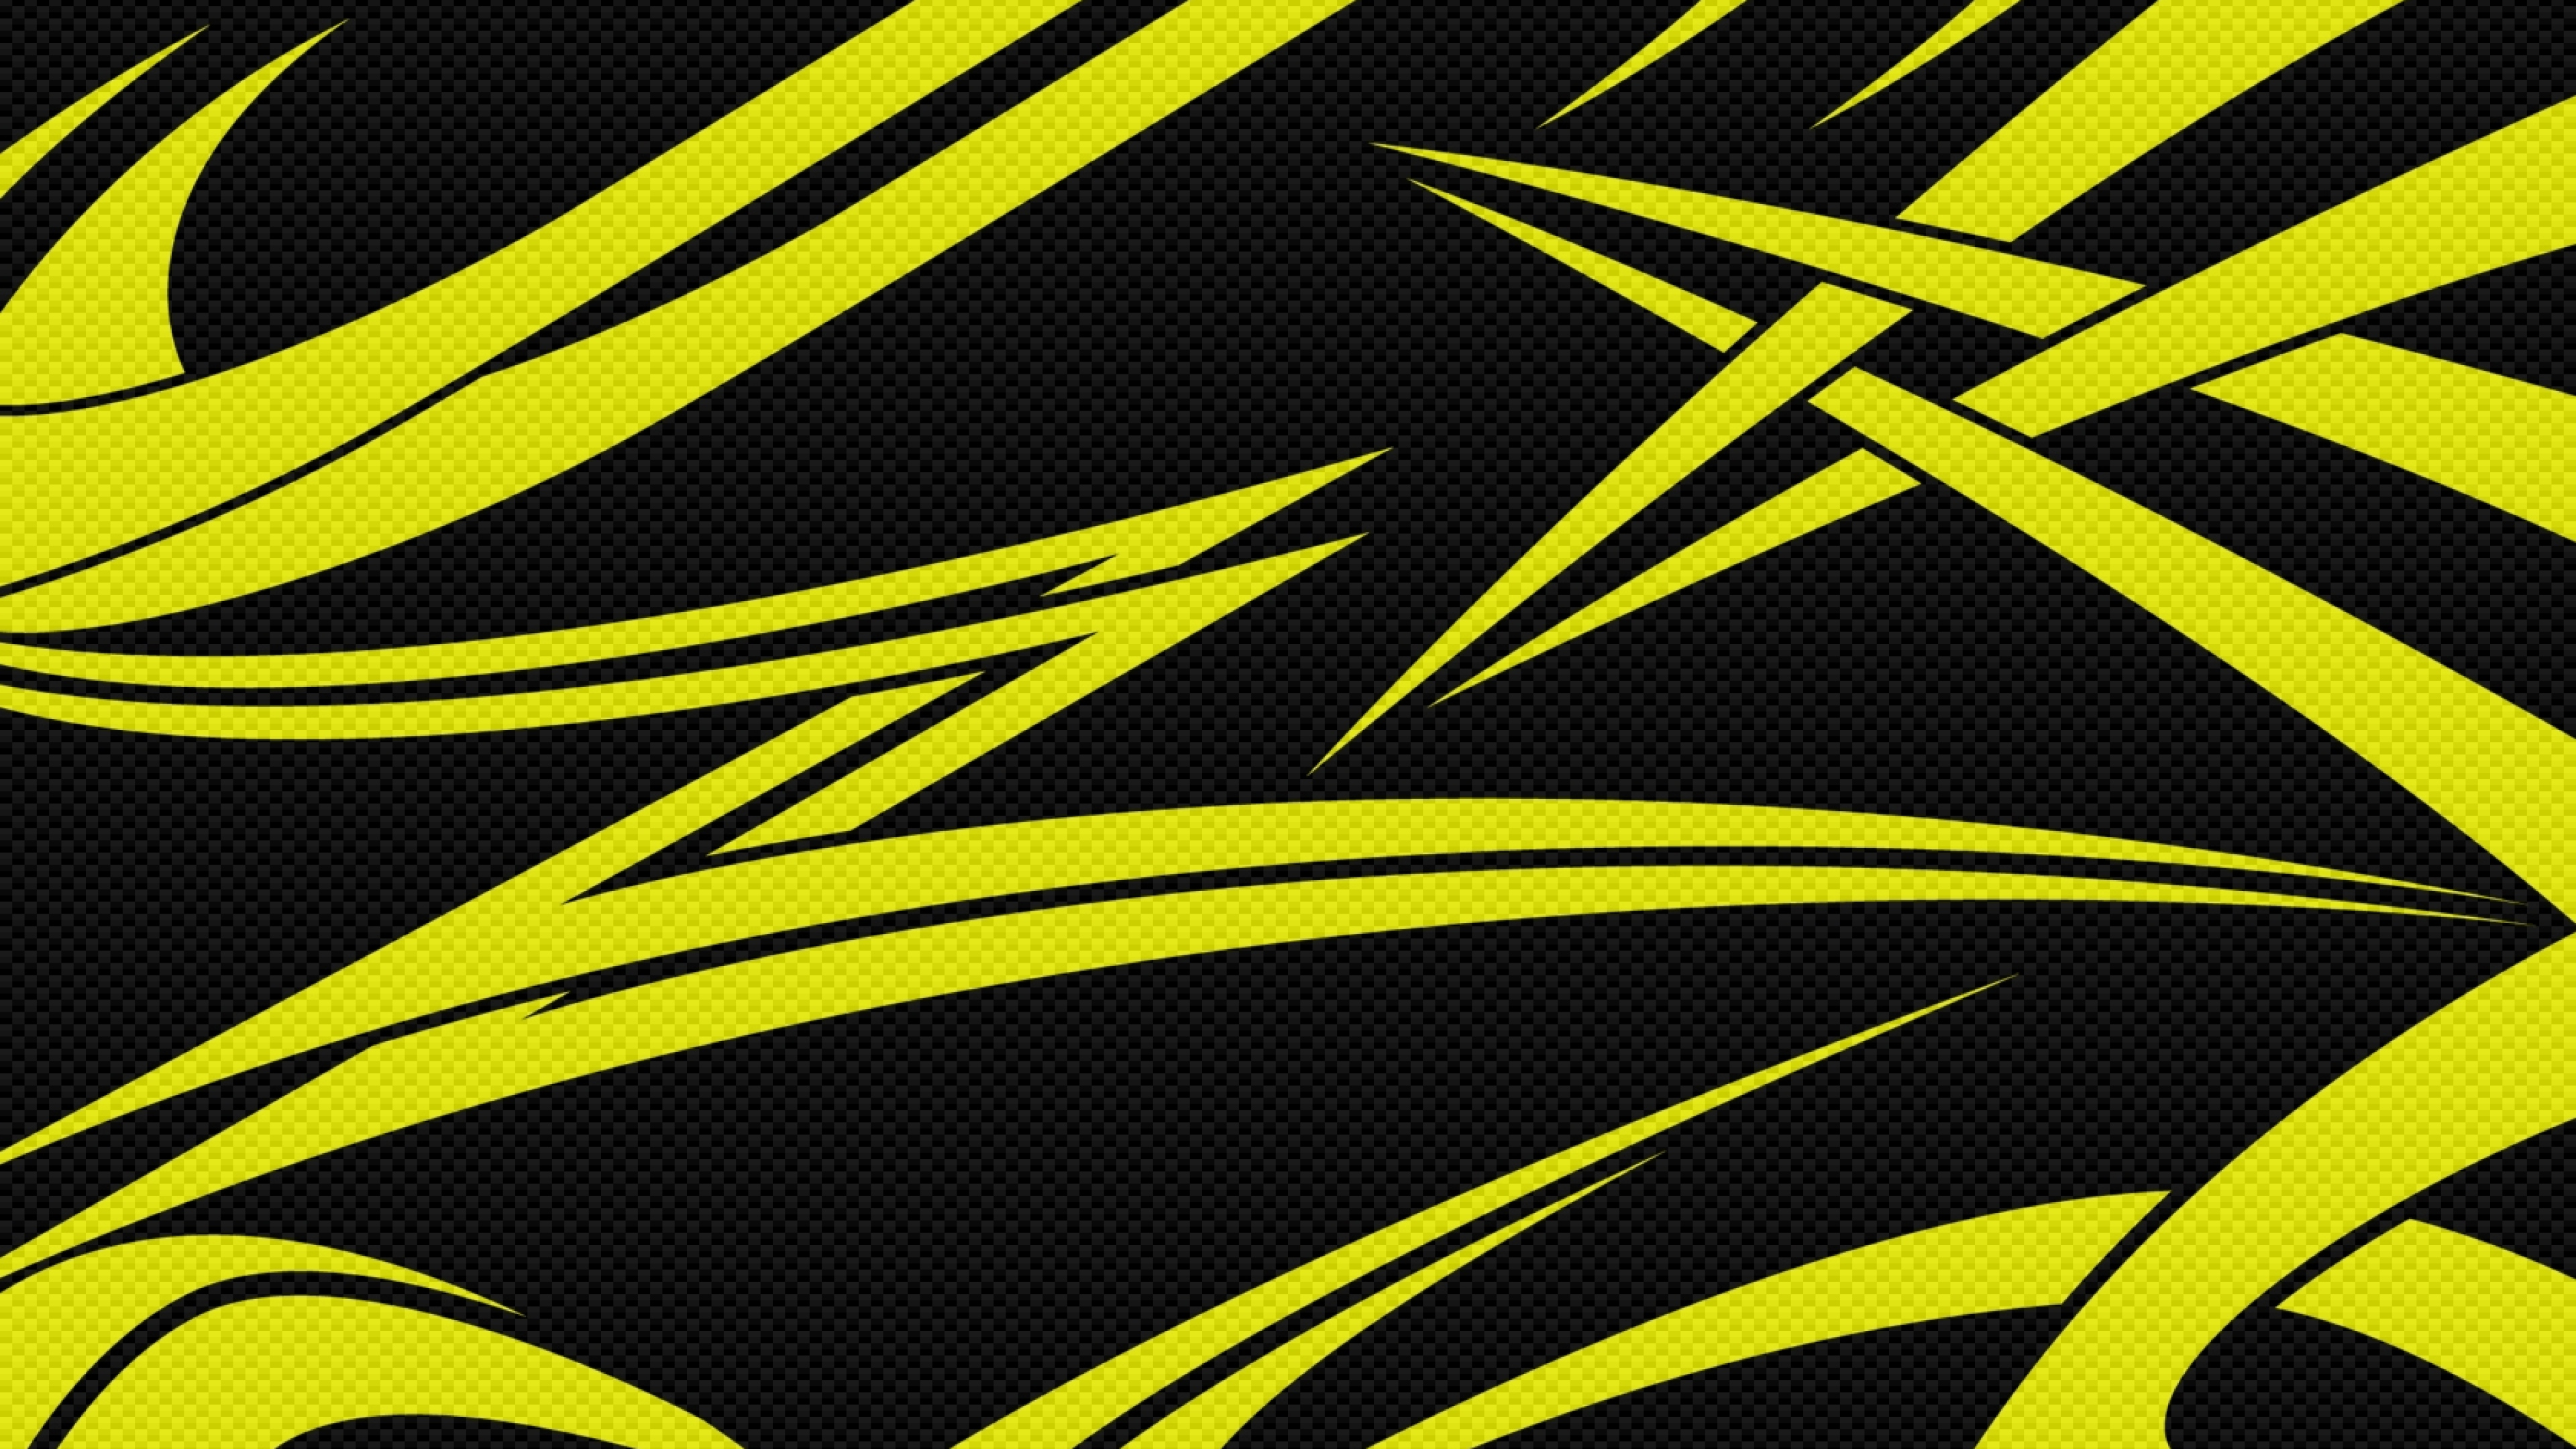 Yellow And Grey Wallpaper B Q Black Yellow Background 40565 Hd Wallpaper Backgrounds Download